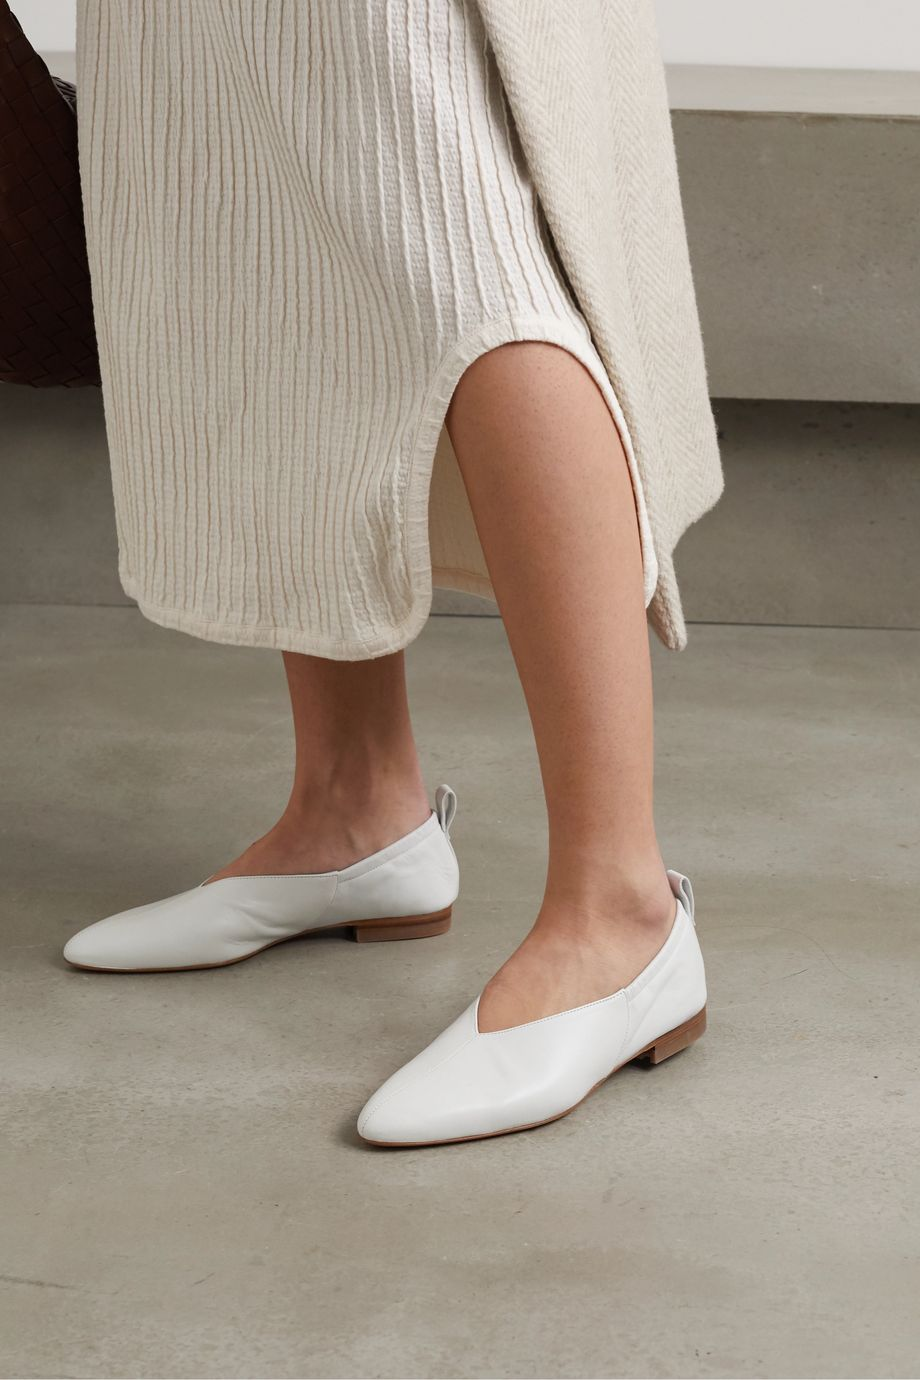 Co Leather ballet flats